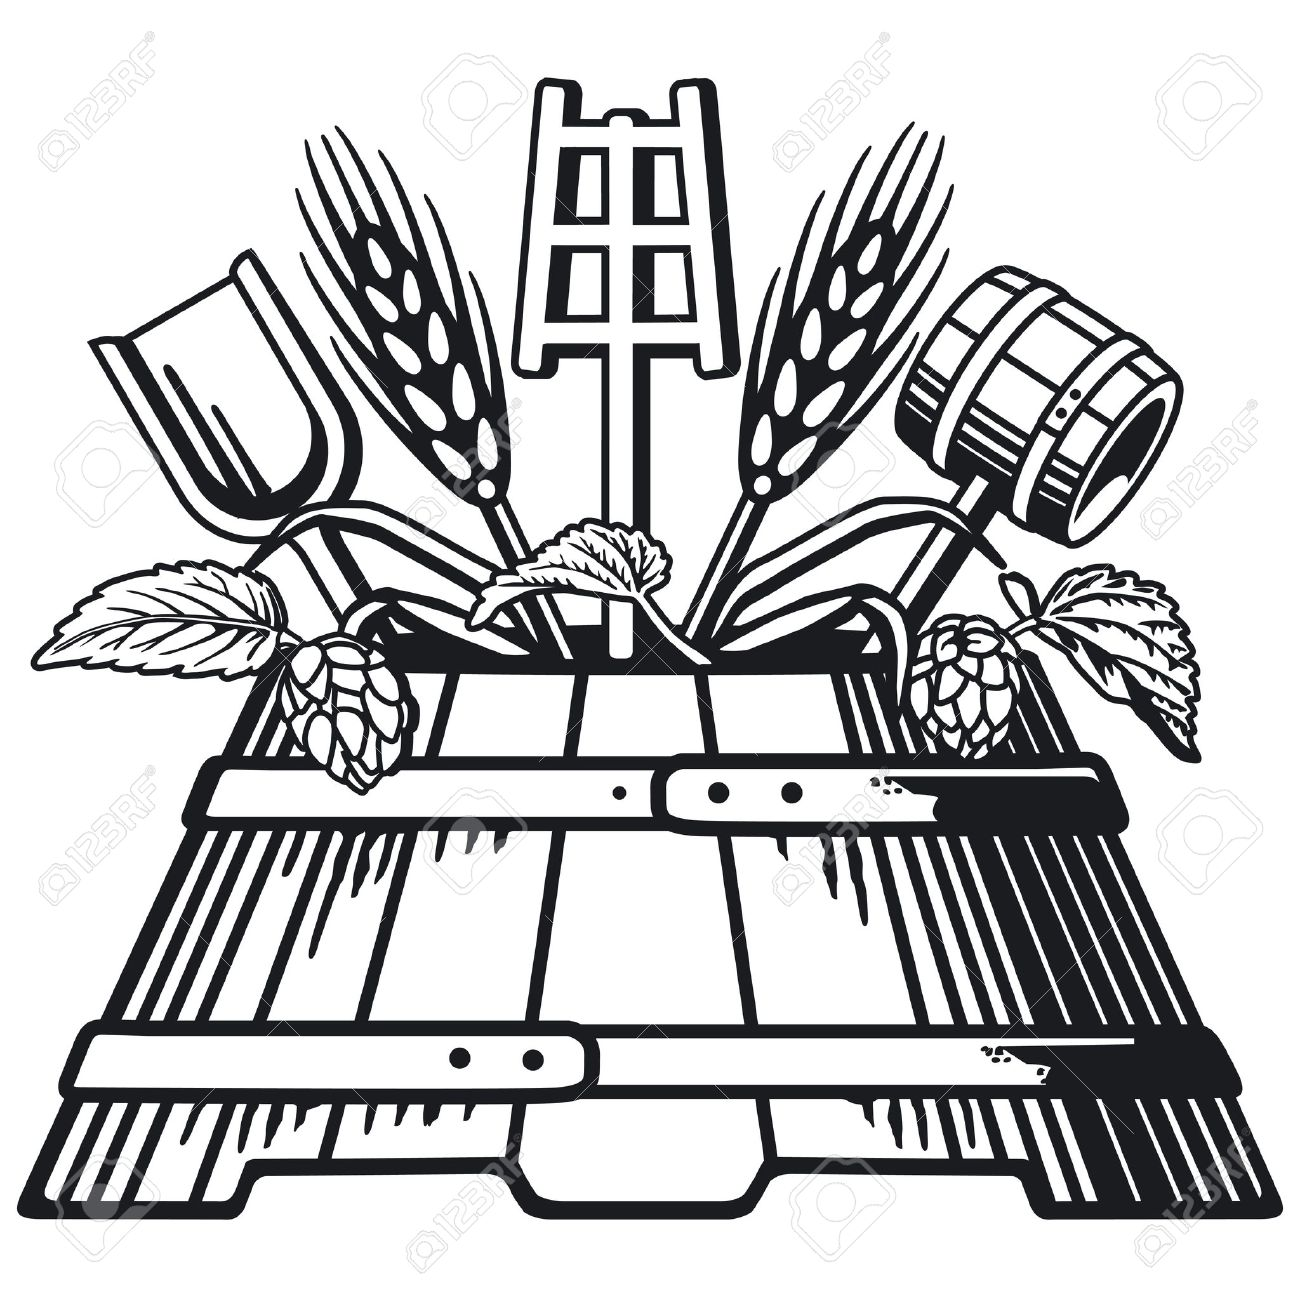 Beer Brewing Clip Art.